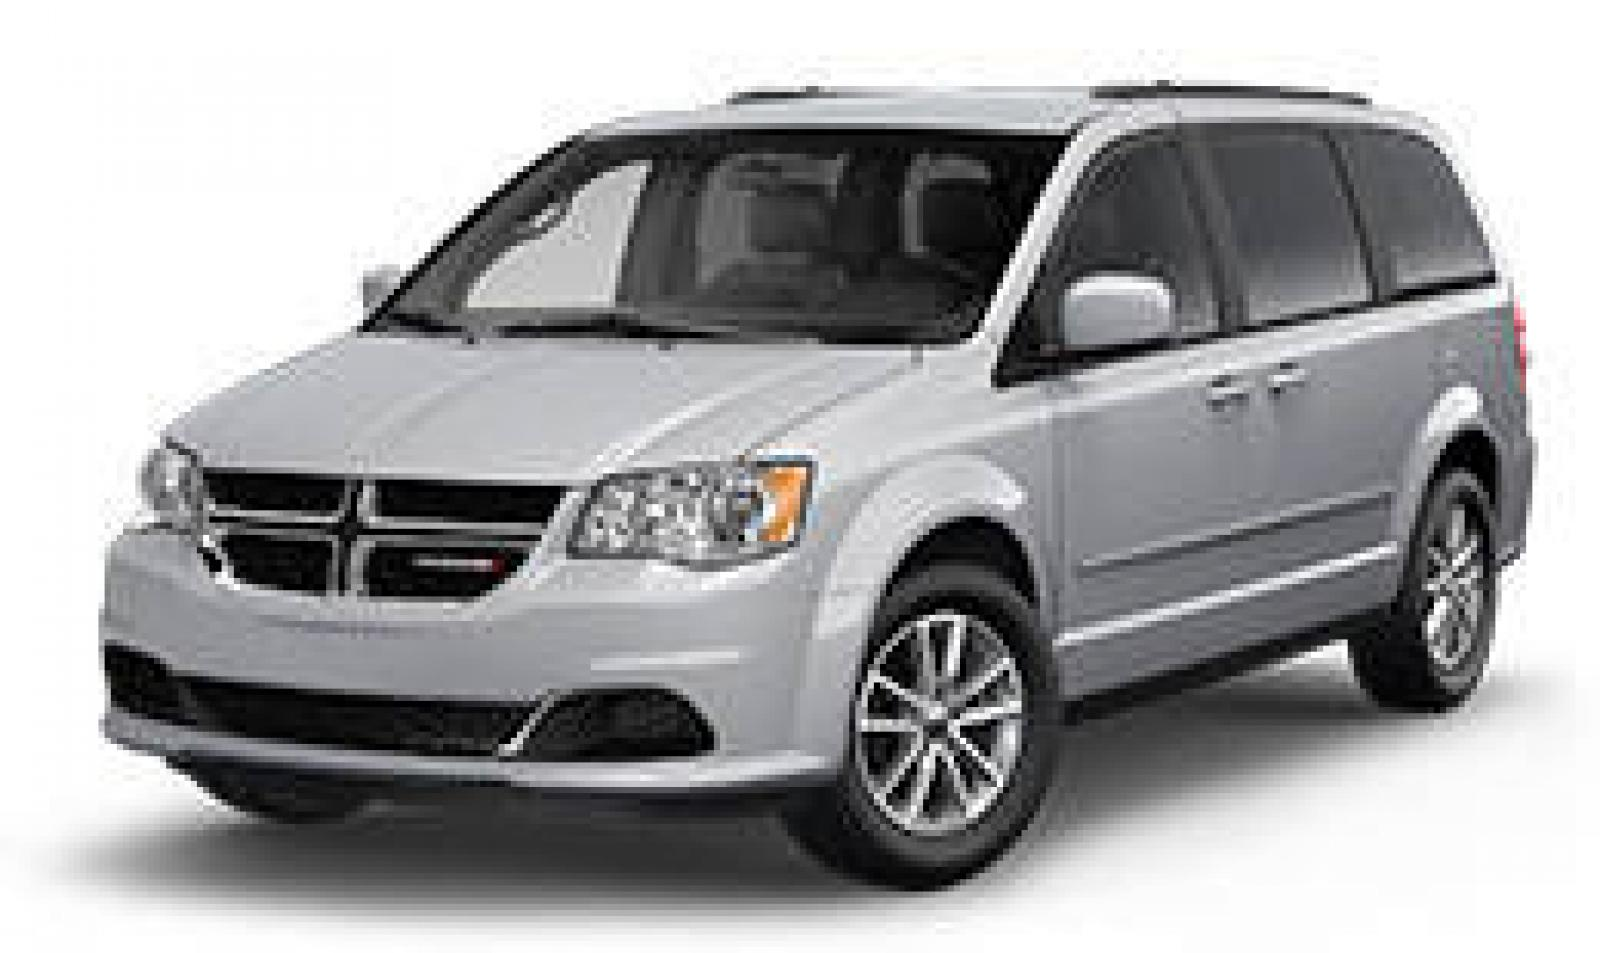 2015 dodge grand caravan information and photos zombiedrive. Black Bedroom Furniture Sets. Home Design Ideas